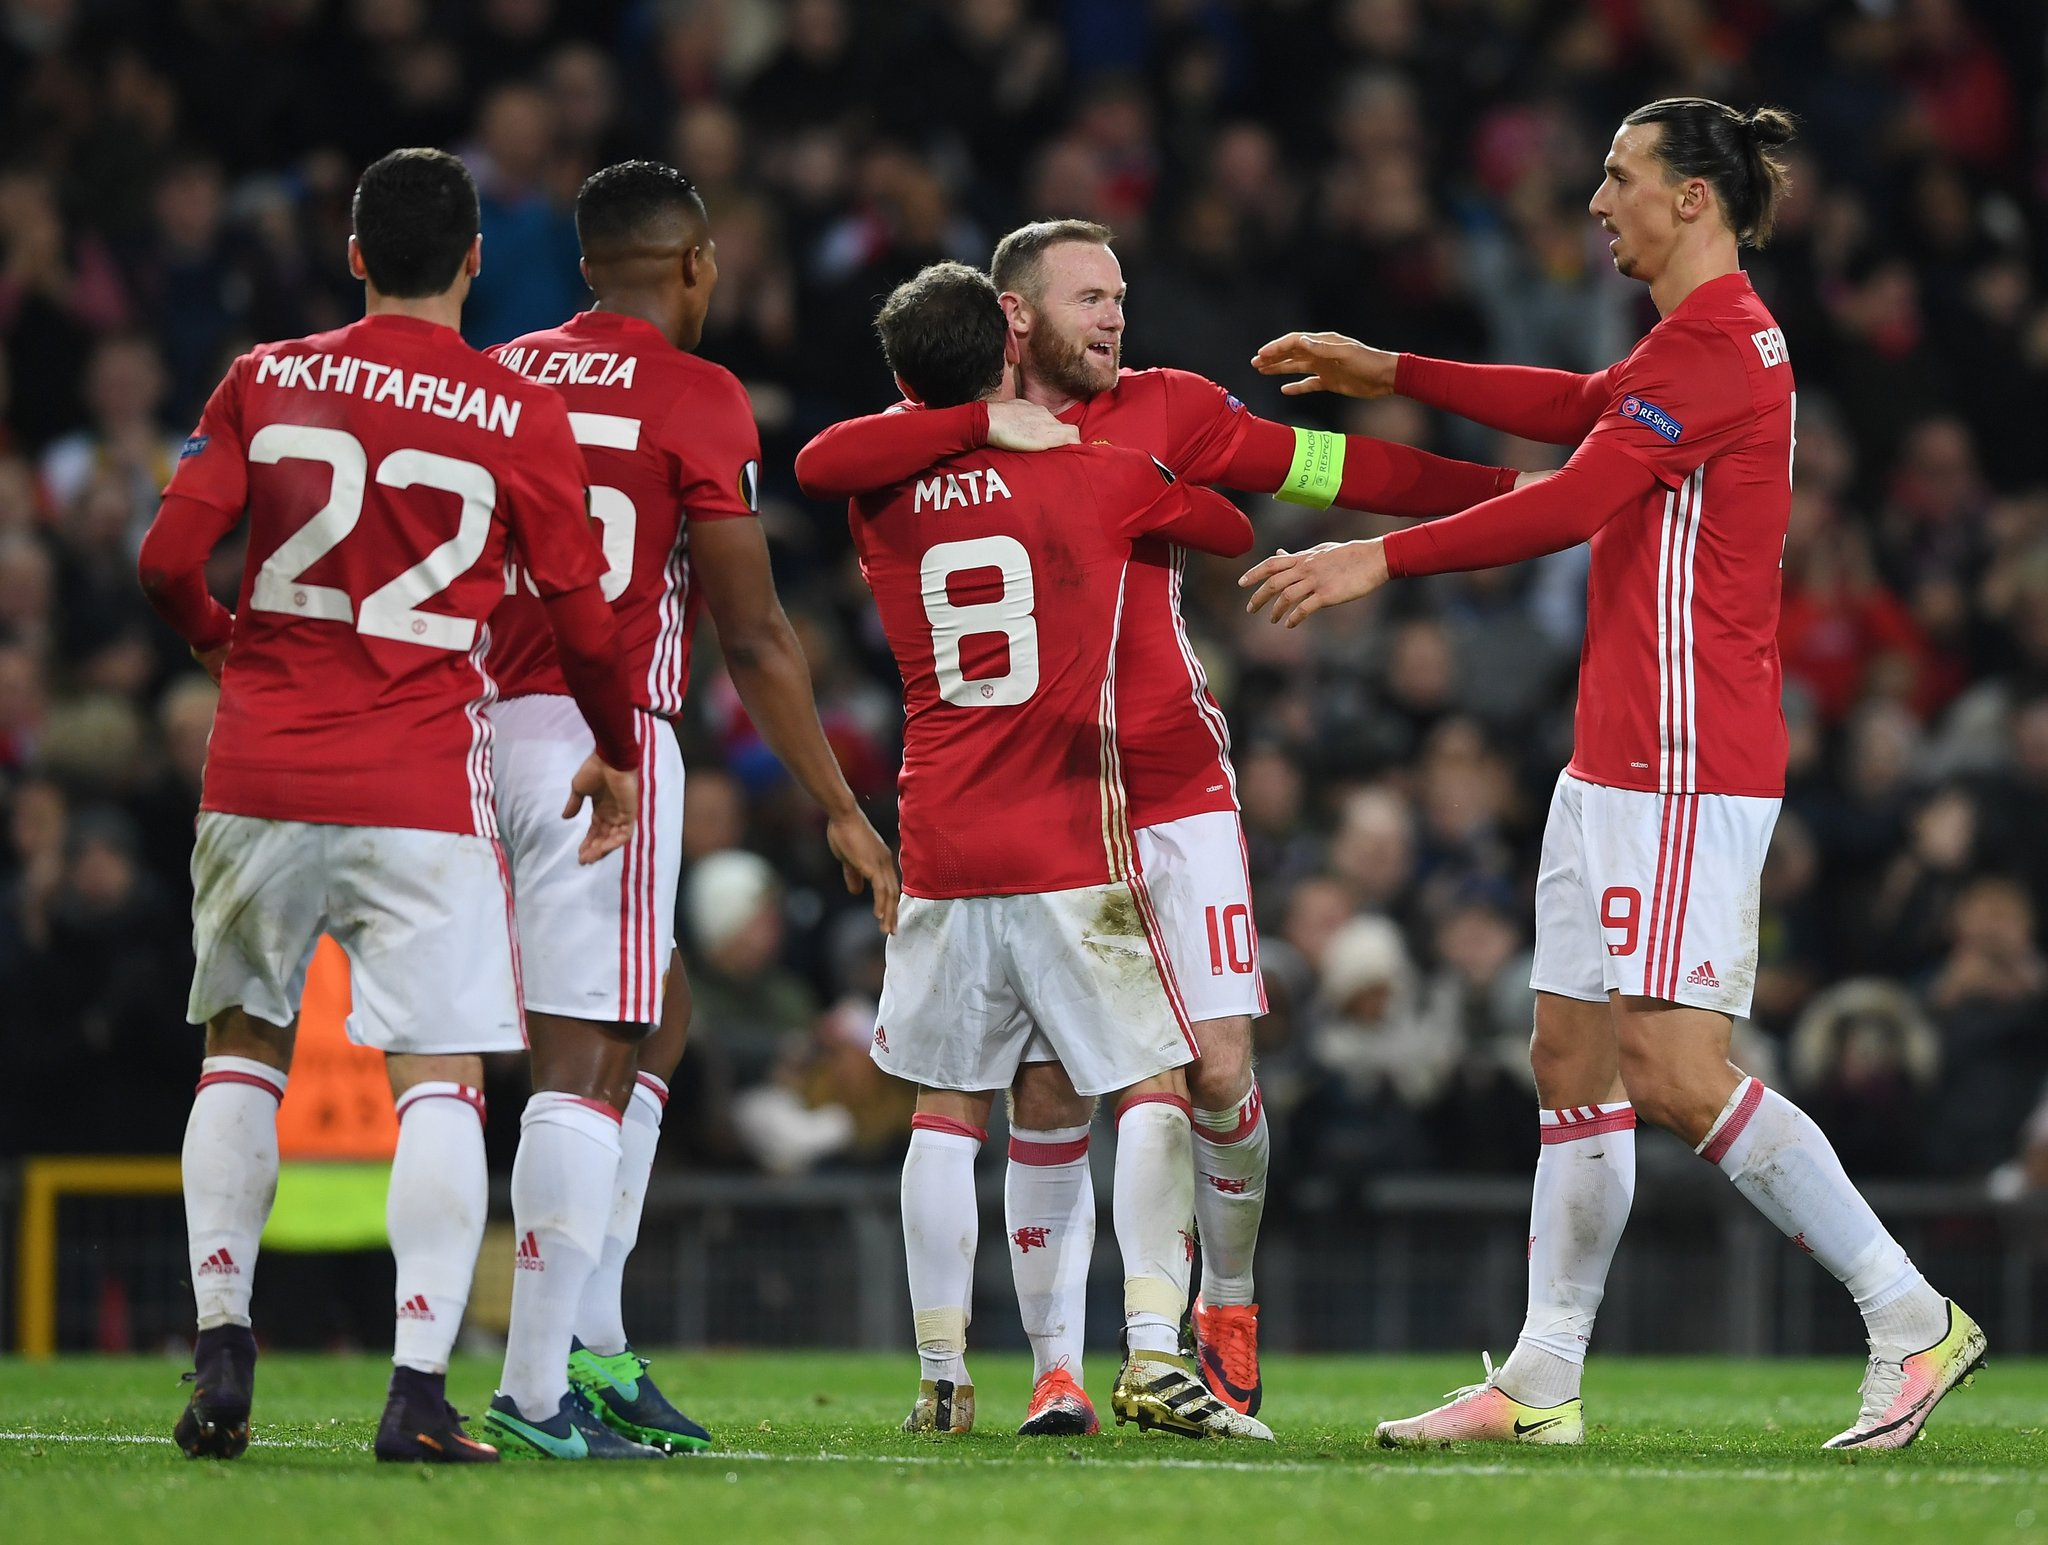 Europa: Rooney, Mata Fire United Past Feyenoord; Ideye, Balogun Shine